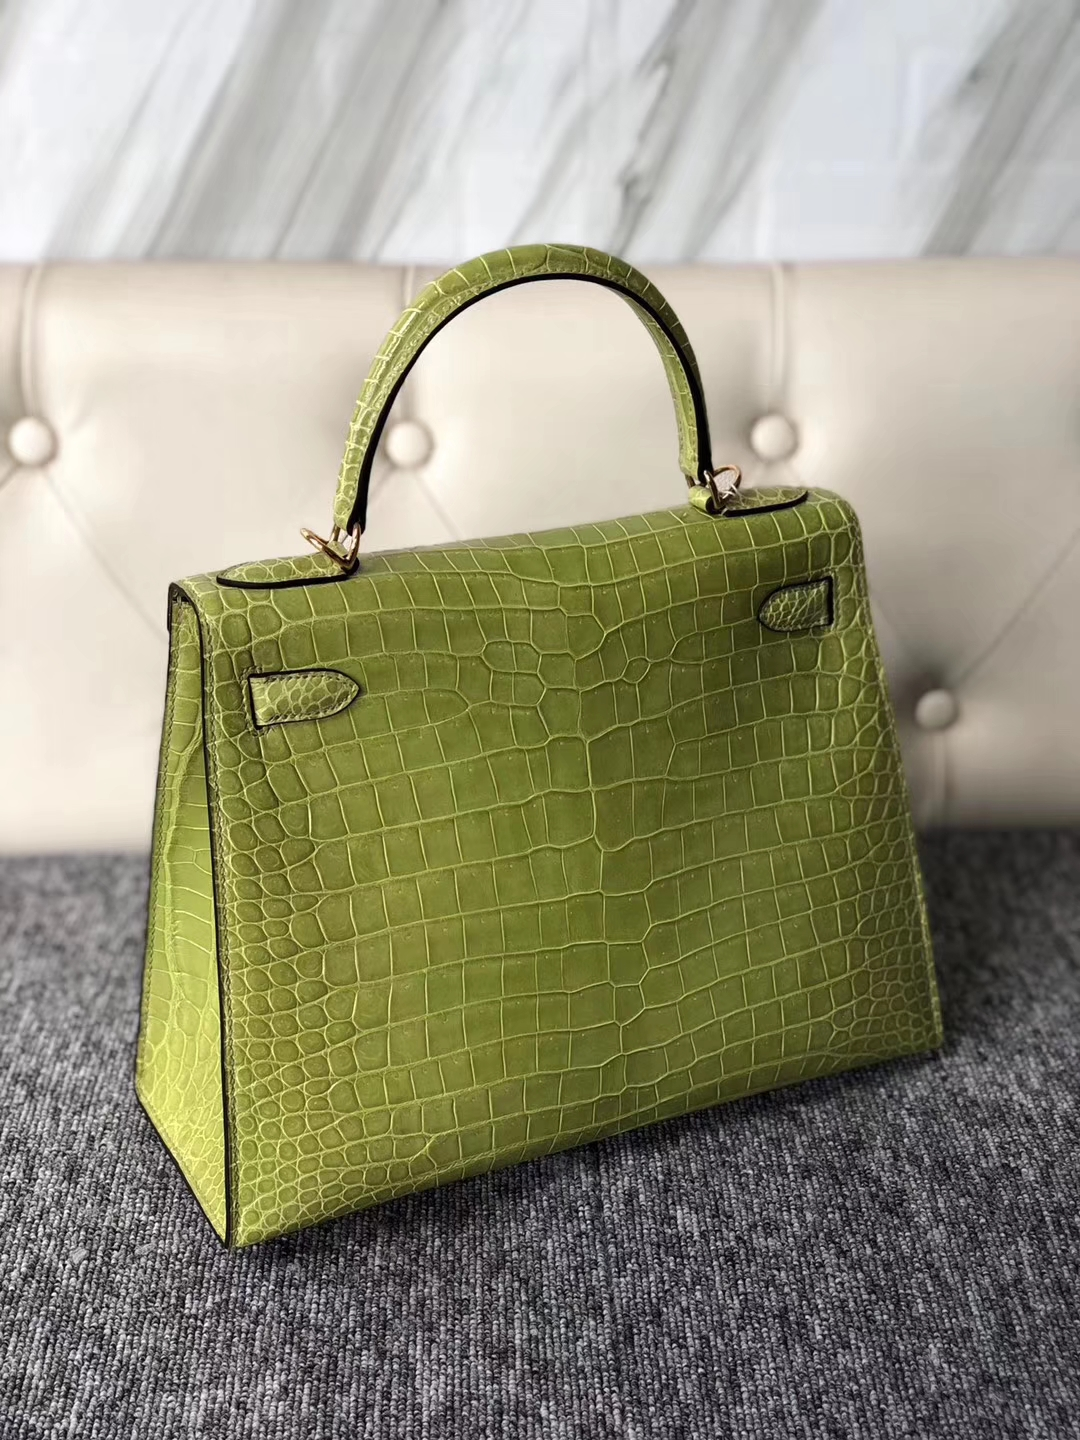 Sale Hermes 6R Vert Kiwi Shiny Crocodile Kelly Bag28CM Gold Hardware